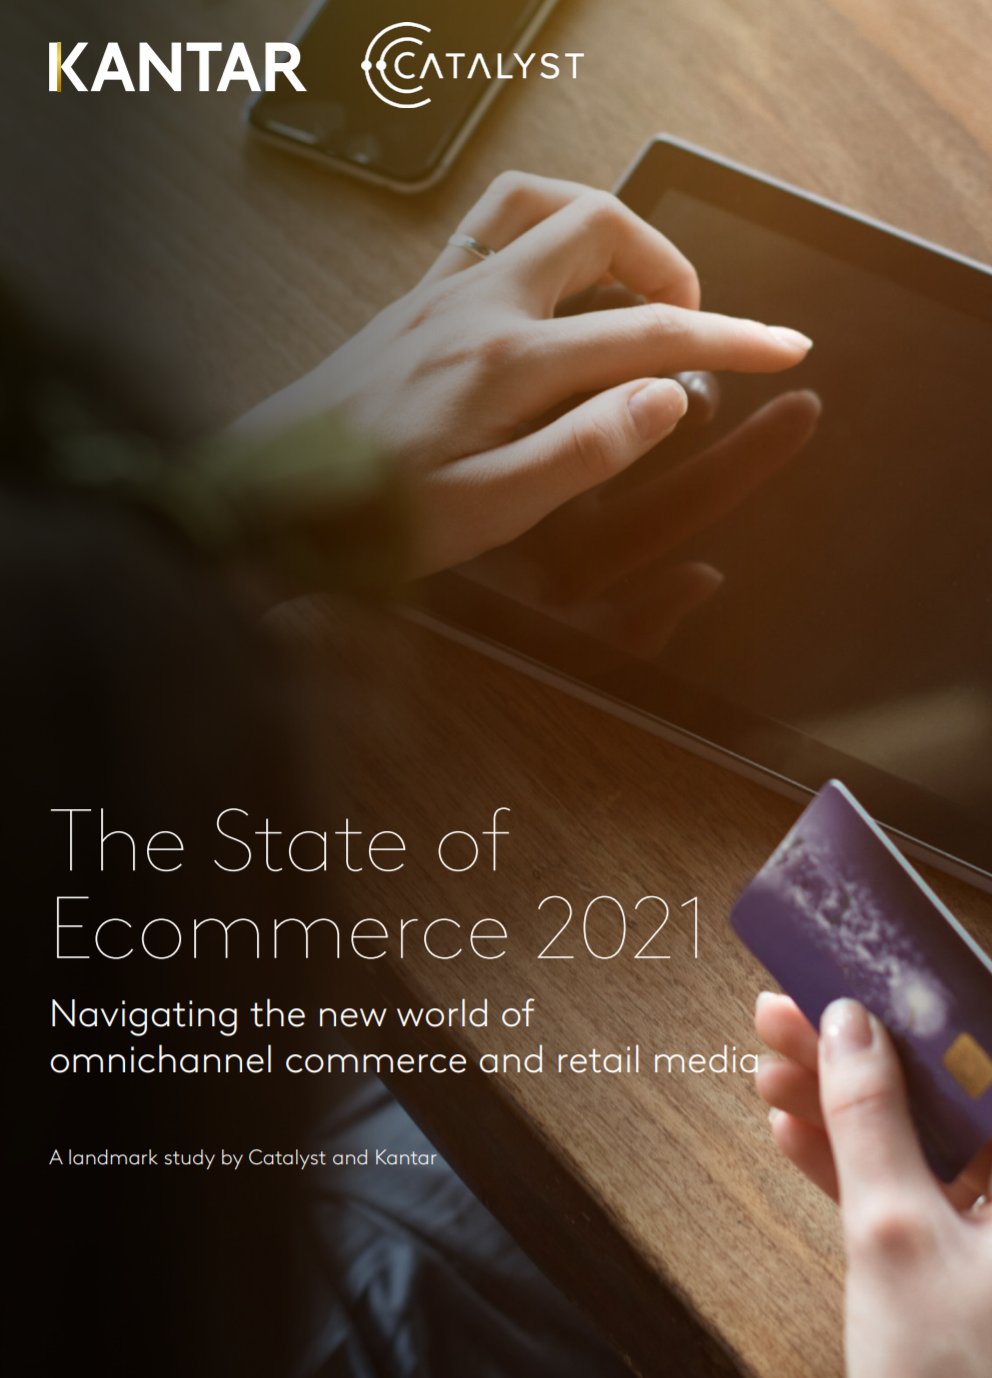 Kantar cayalist the state of eCommerce 2021